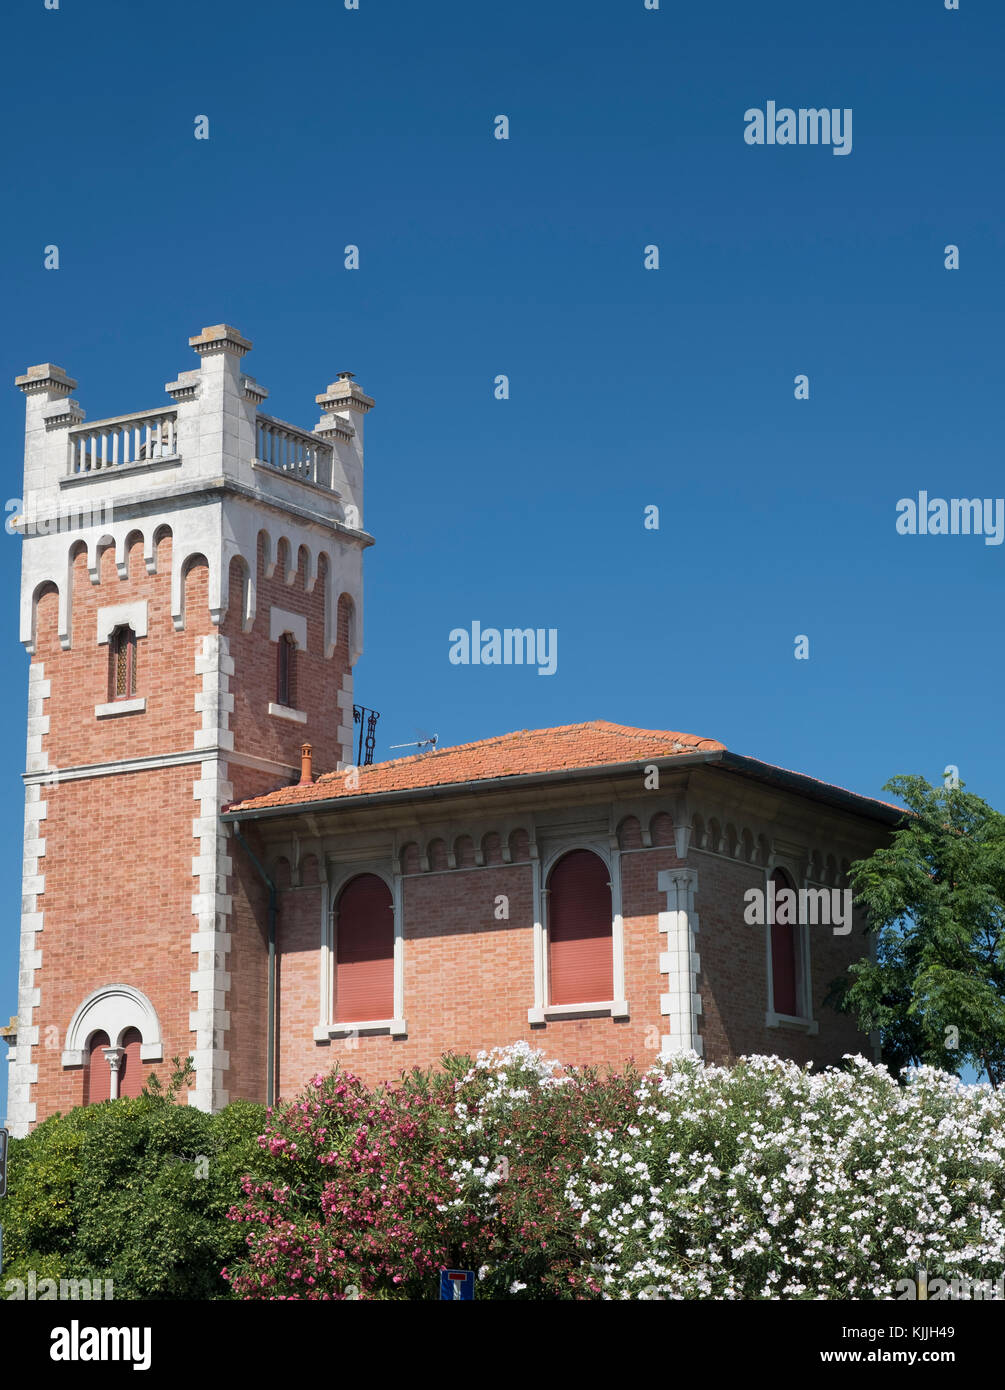 Porto Potenza Picena (Macerata, Marches, Italy): odd old house with tower and flowered garden Stock Photo